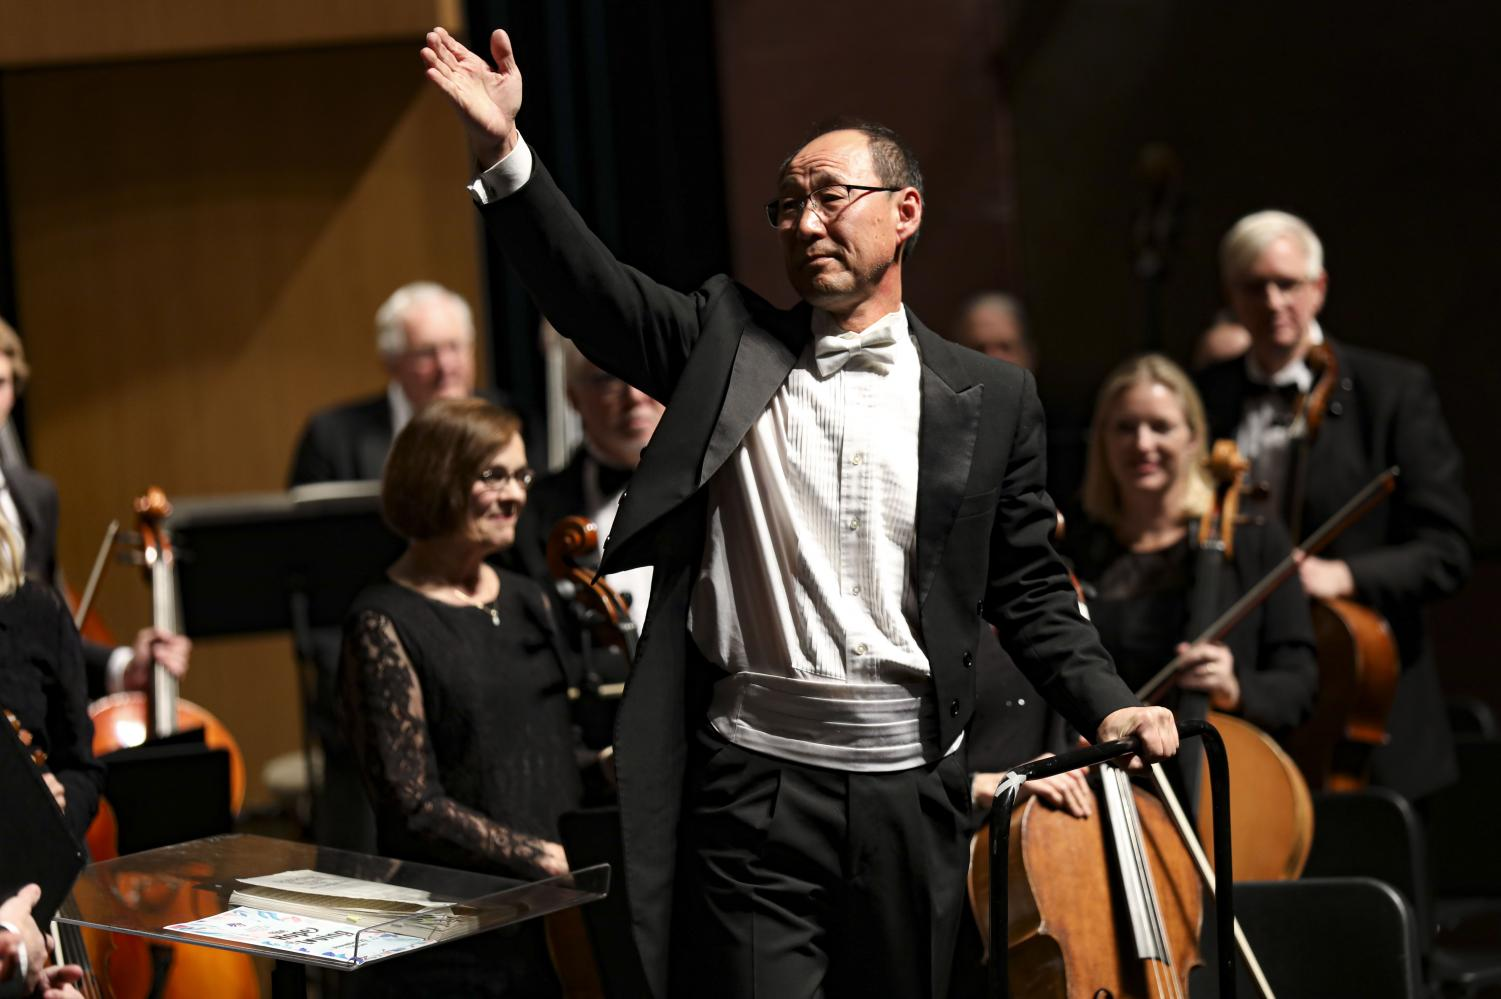 Conductor James J. Song points out the musicians that played especially well as the audience erupts into applause at the end of the